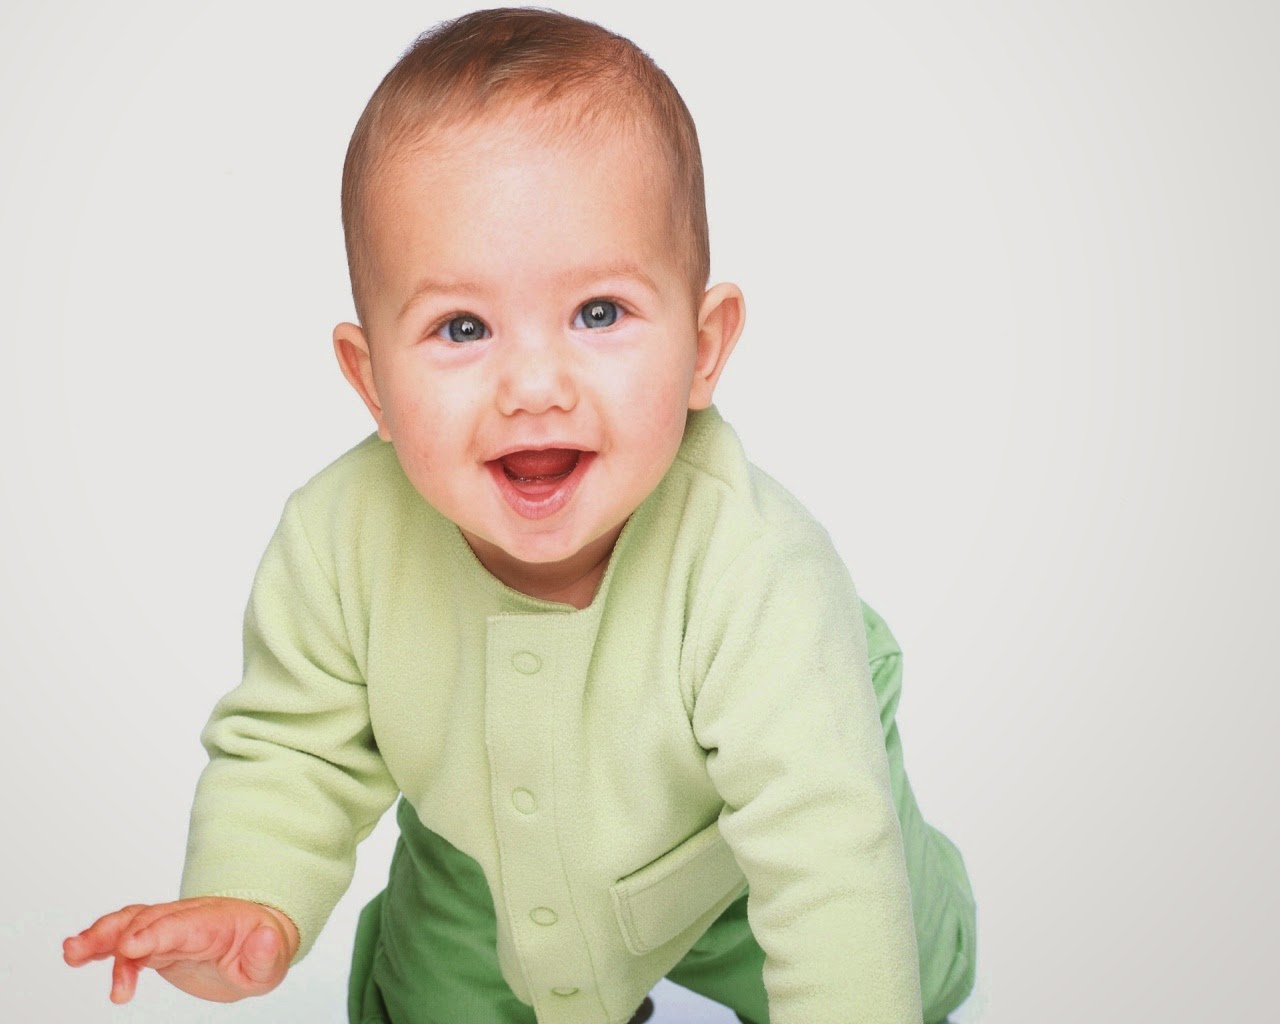 Download Cute Baby Other Wallpaper Full Hd Wallpapers 1280x1024